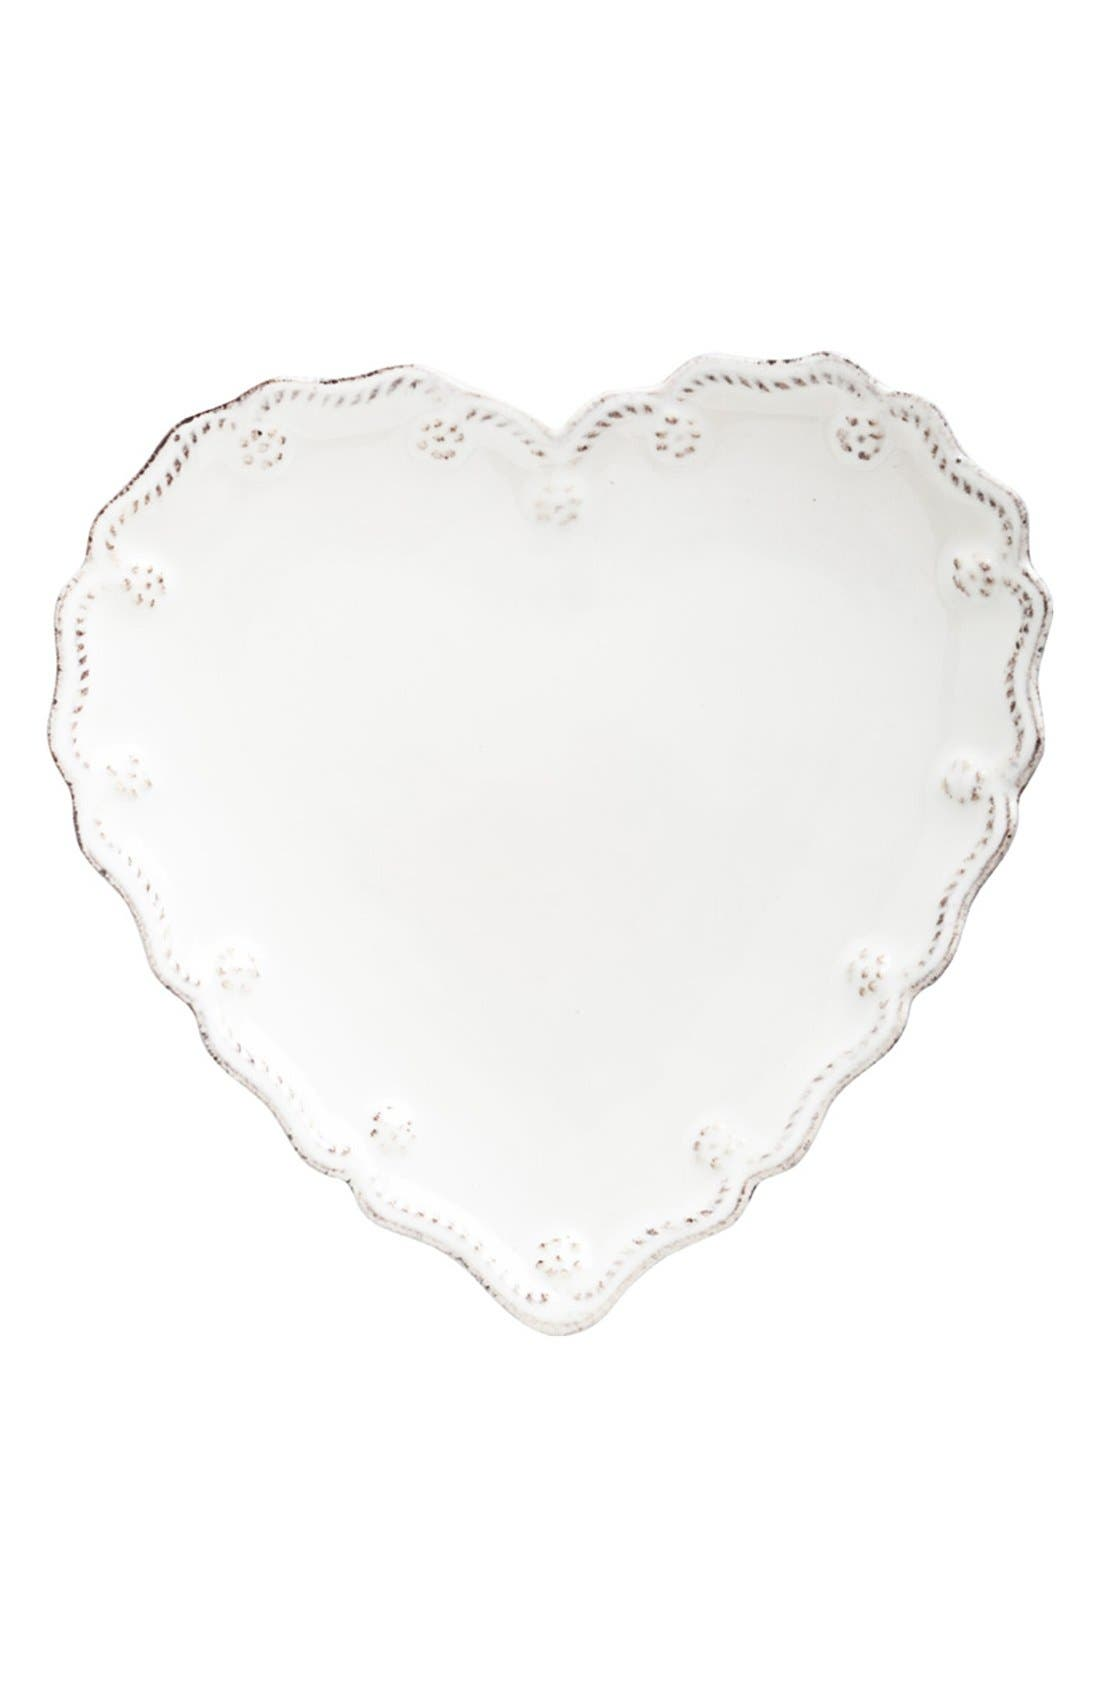 'Berry and Thread' Heart Shaped Cocktail Plates,                         Main,                         color,